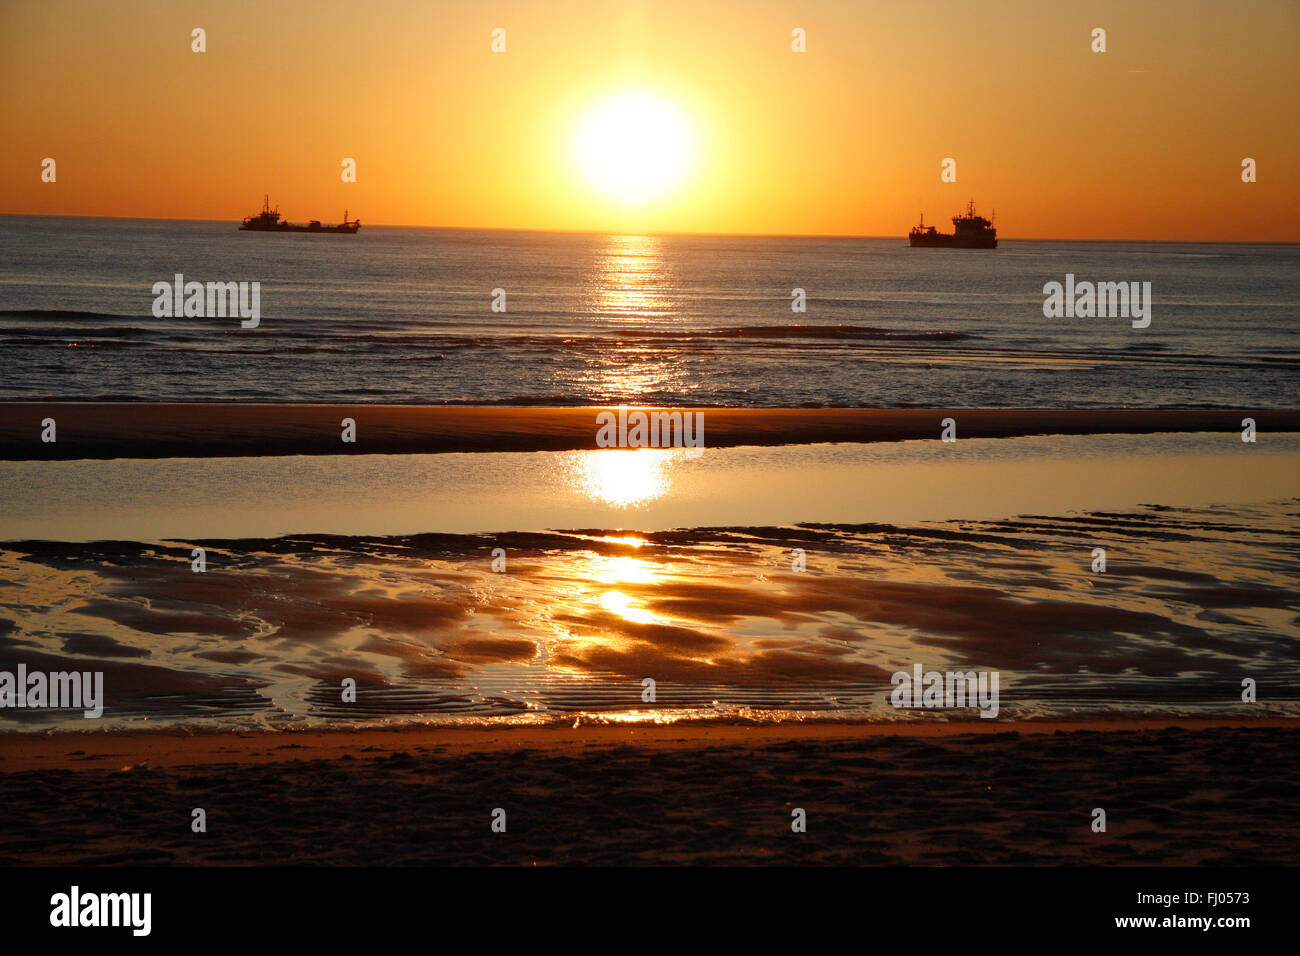 Strand nordsee sonnenuntergang  Sonnenuntergang, Nordsee, Strand, Sylt Stock Photo, Royalty Free ...